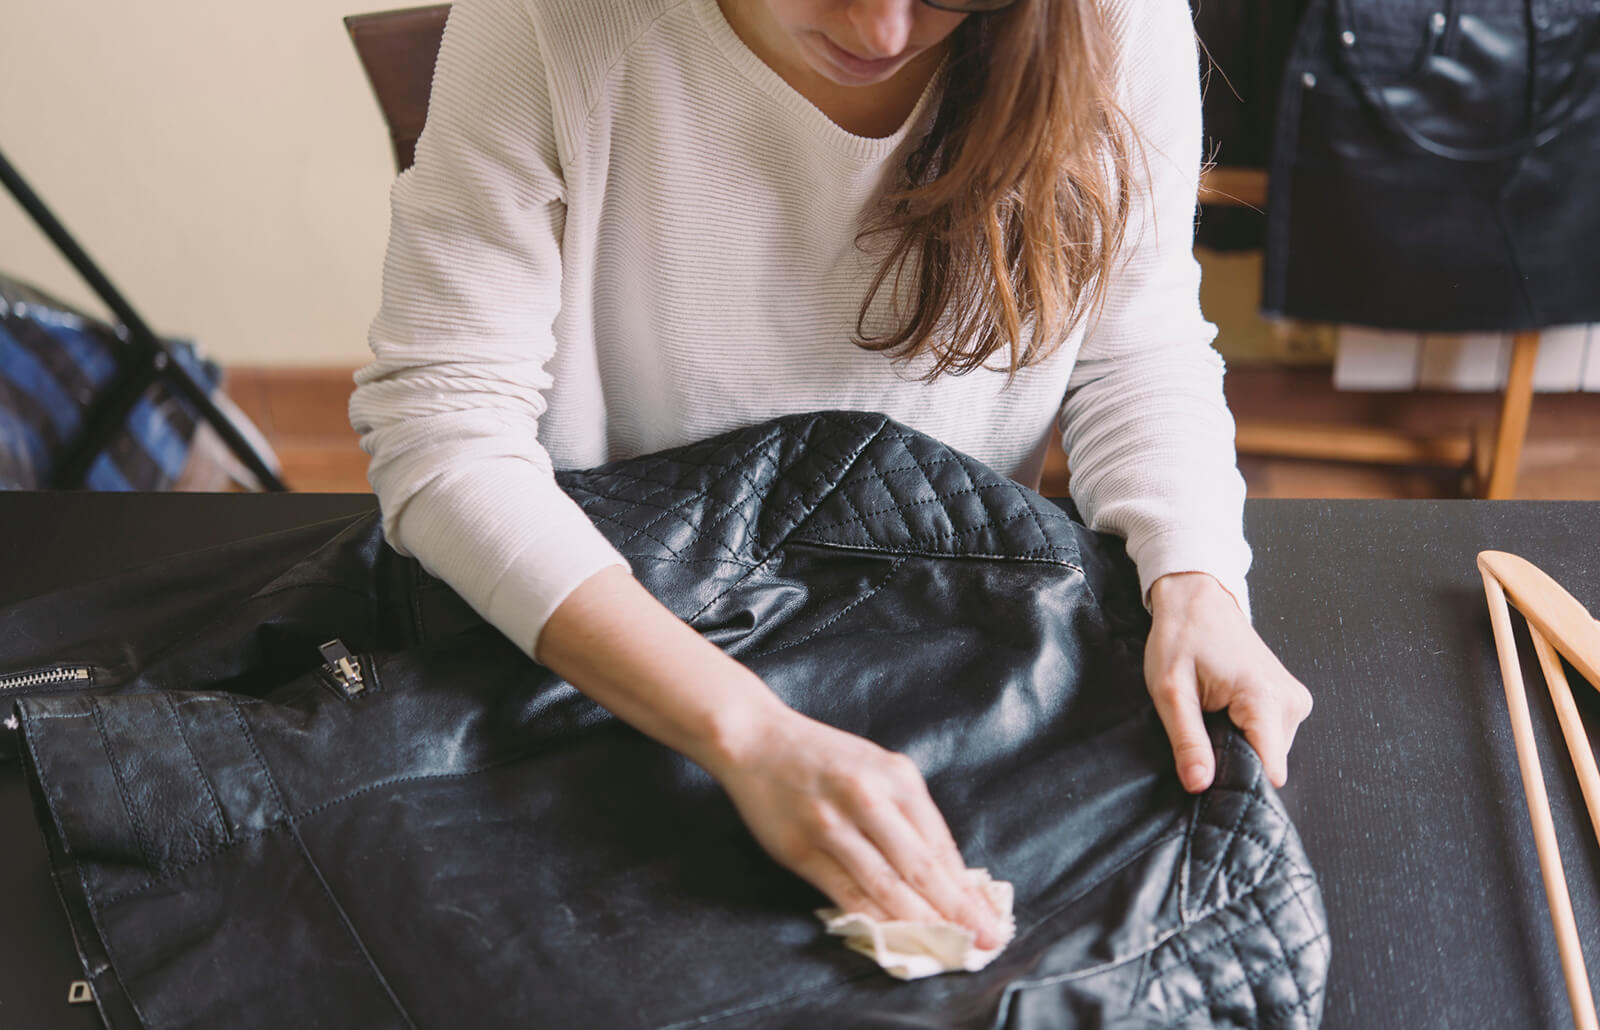 How To Clean A Leather Jacket At Home